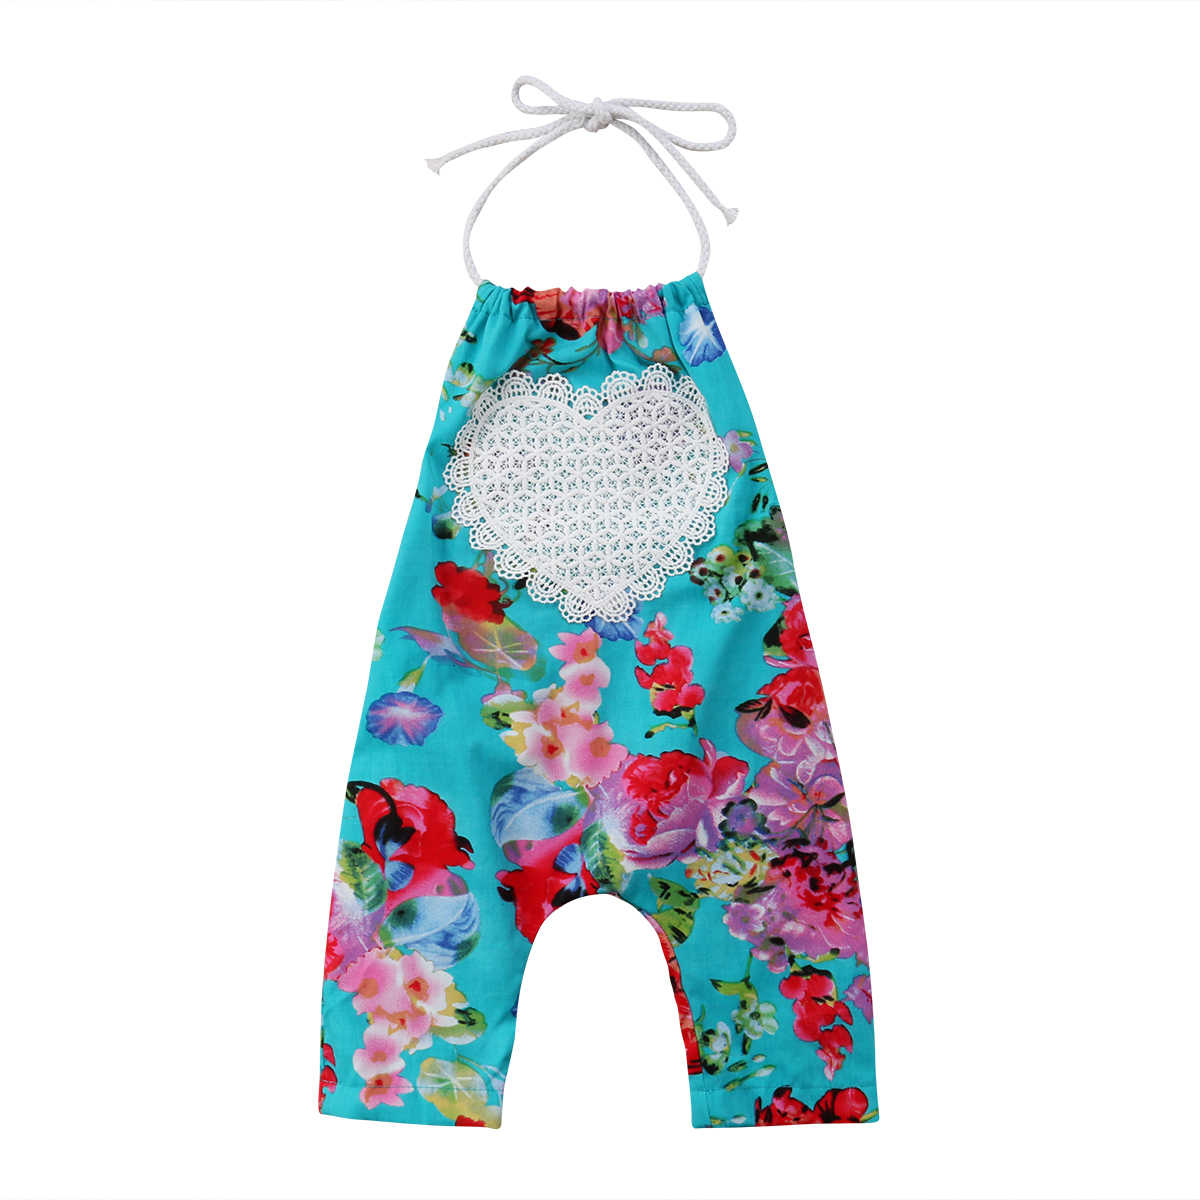 c5db3a08ad35 Detail Feedback Questions about 2018 Newest Style Newborn Kids Baby ...